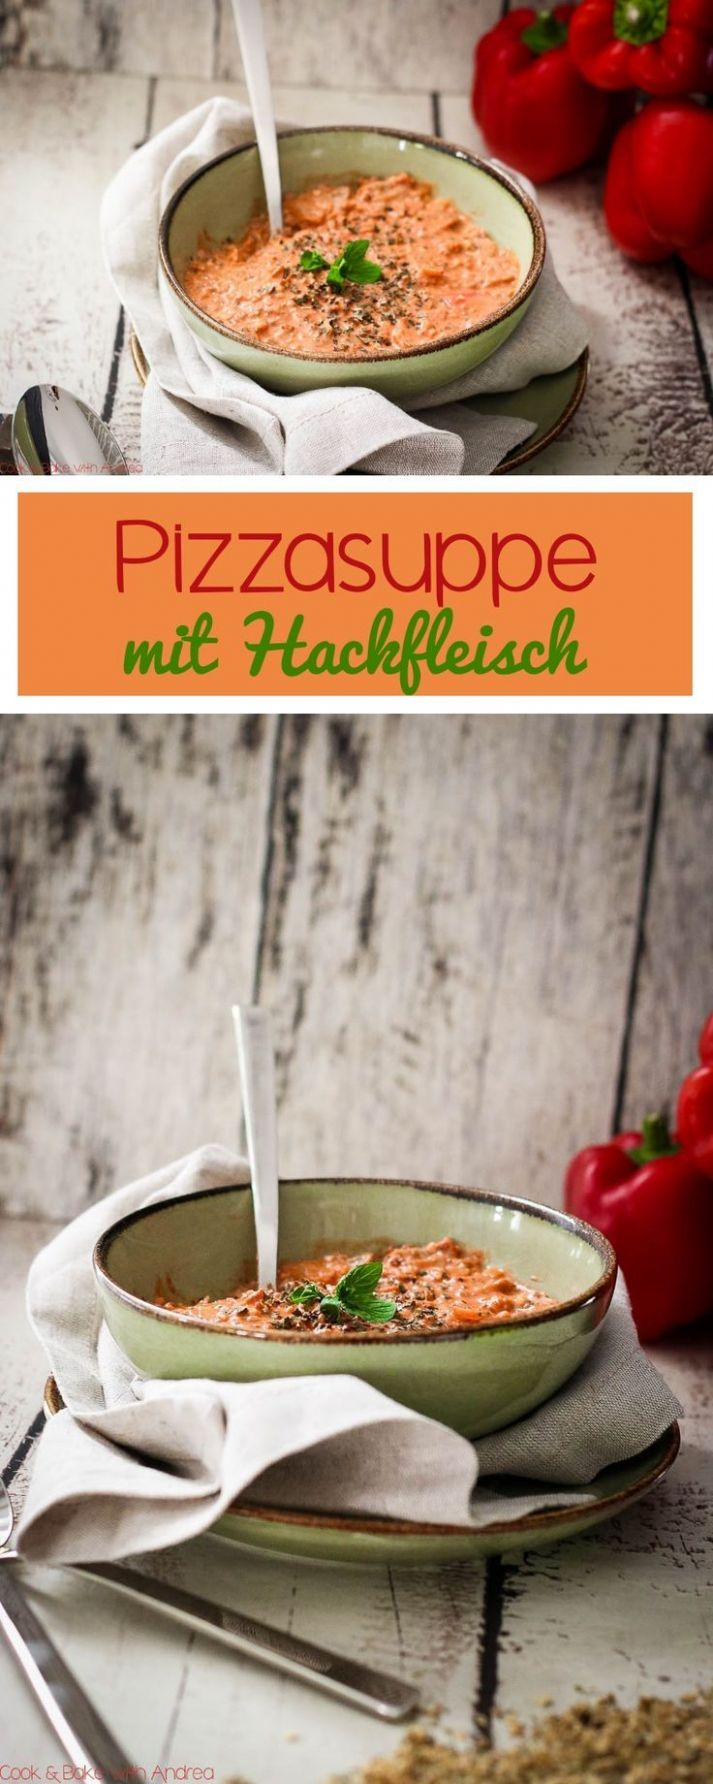 Pizza soup with minced meat - My Pinterest Cookbook | Pizzasuppe ...